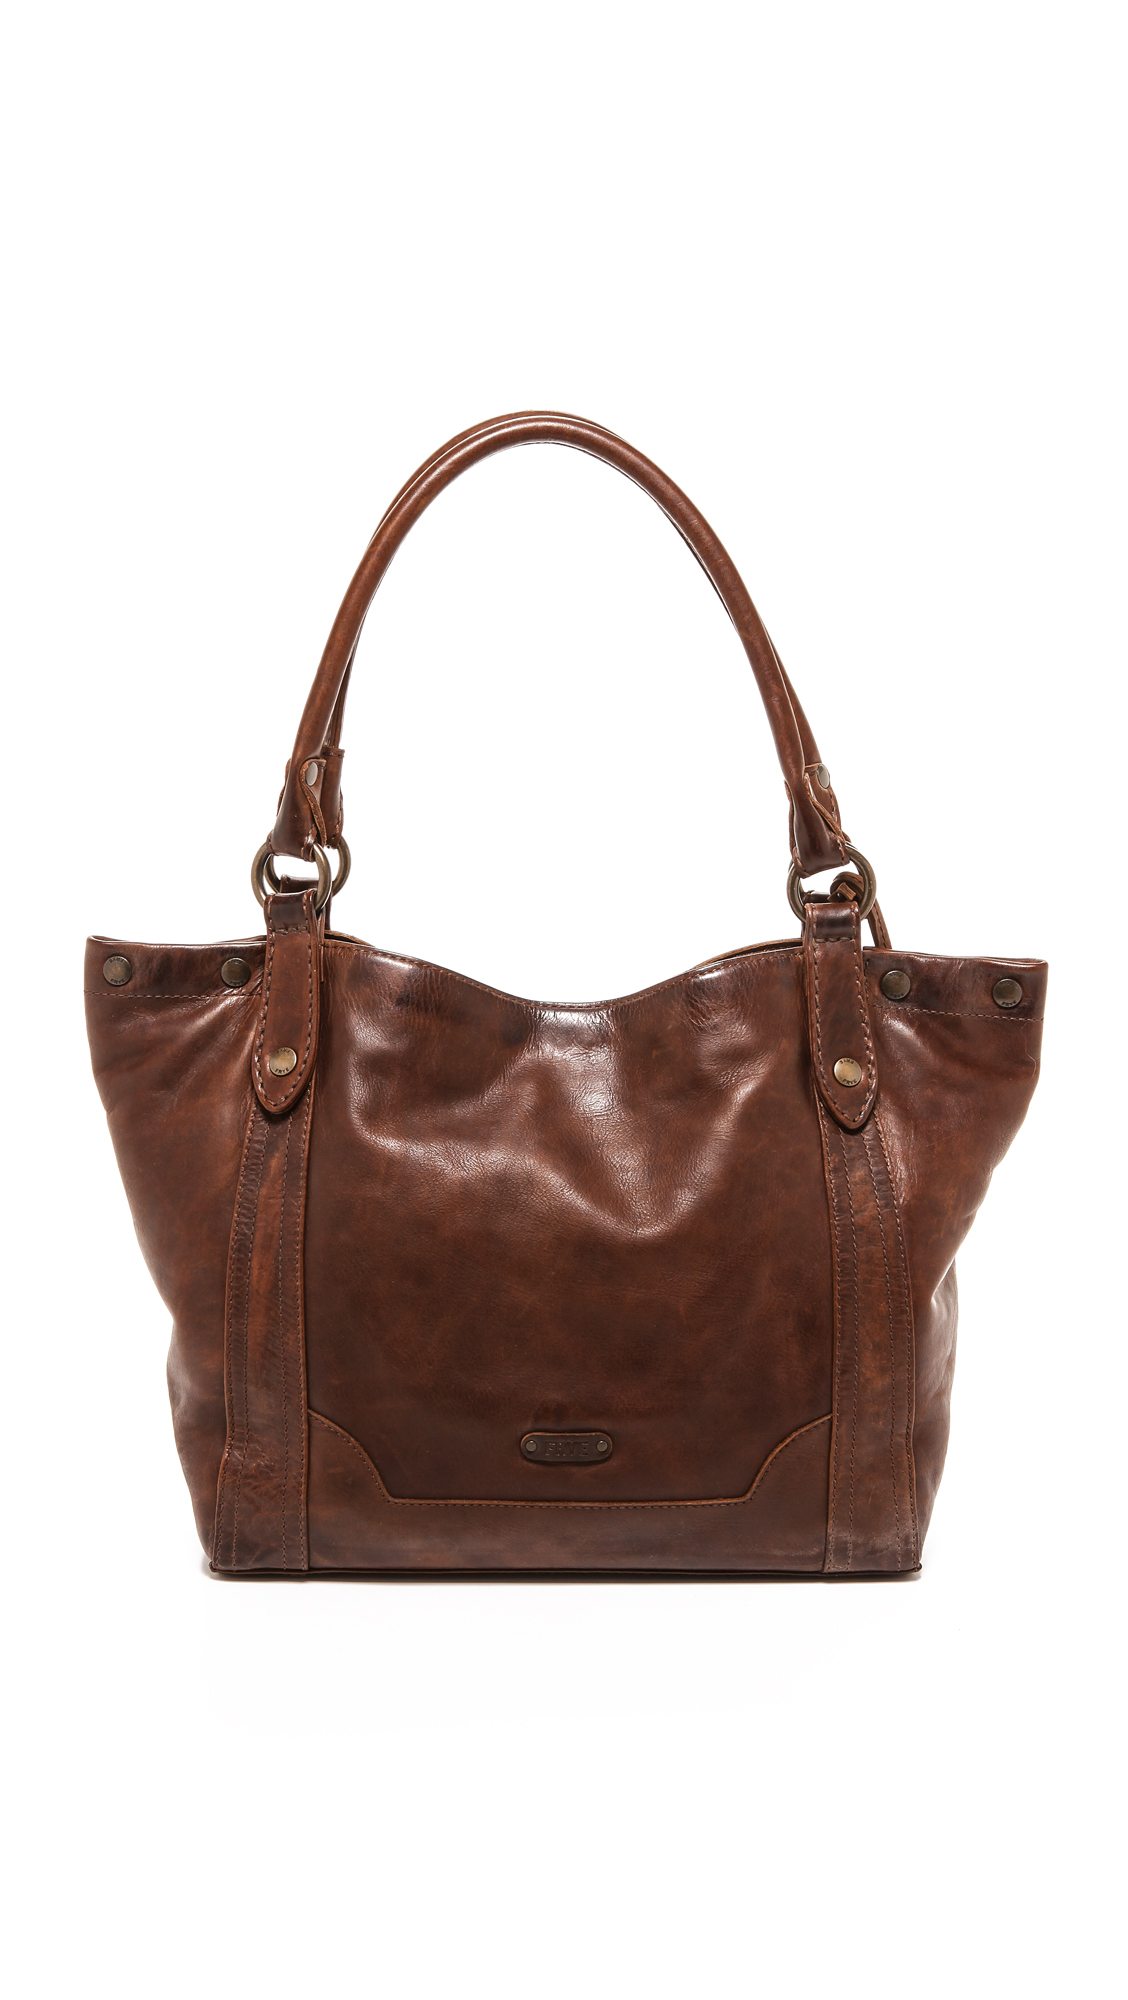 Frye Melissa Shoulder Bag - Dark Brown in Brown | Lyst